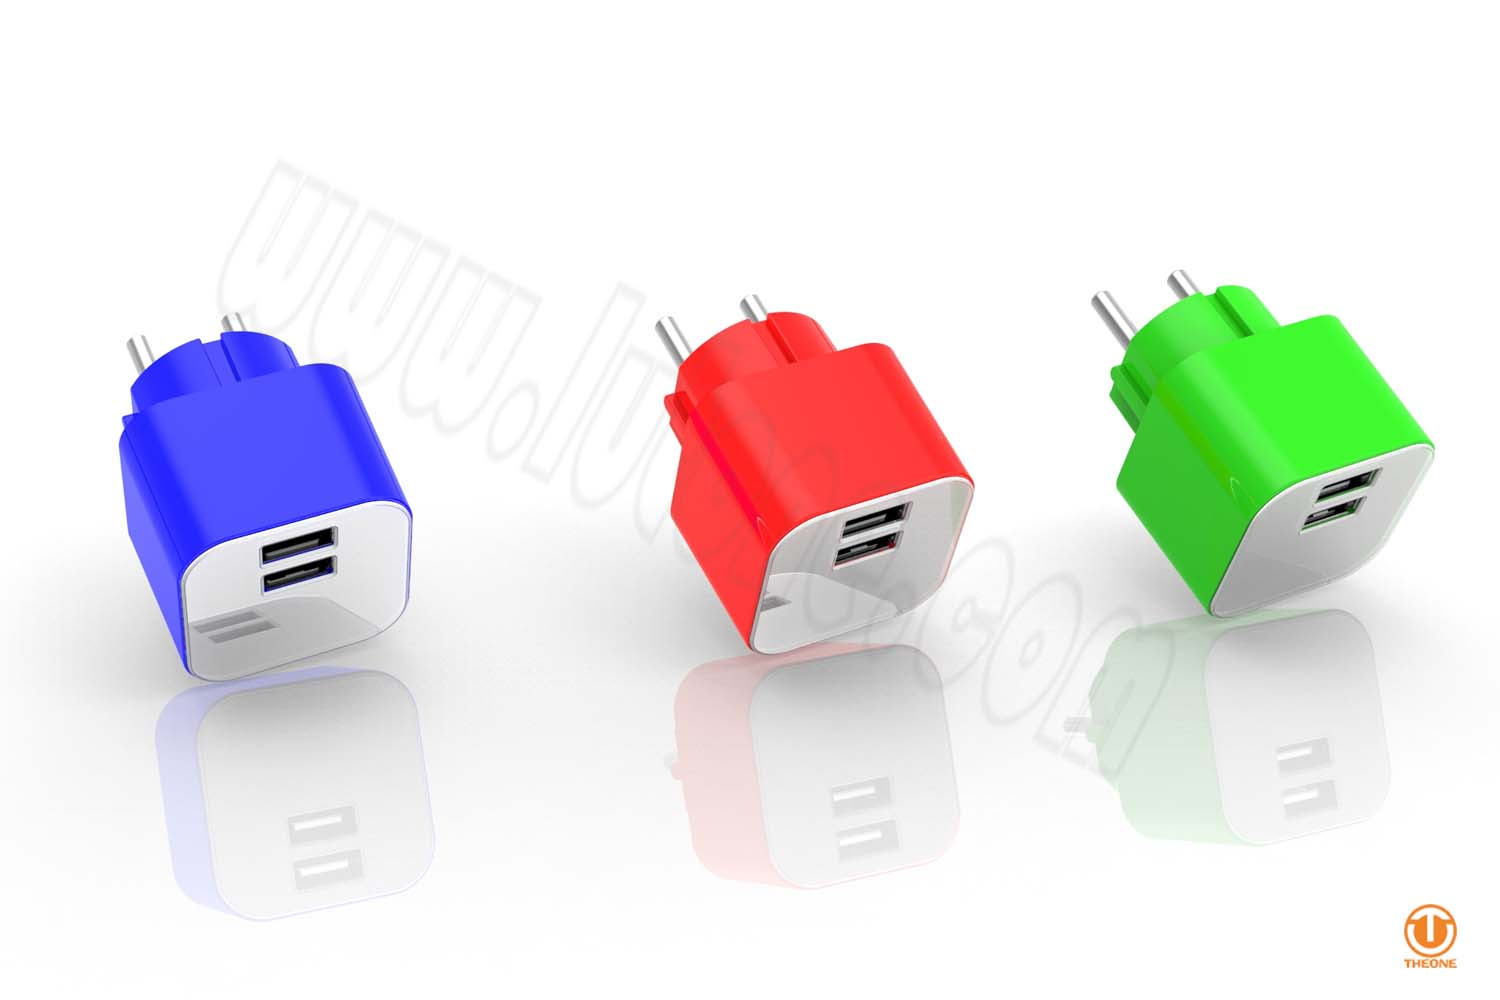 tc03b2-6 dual usb wall charger